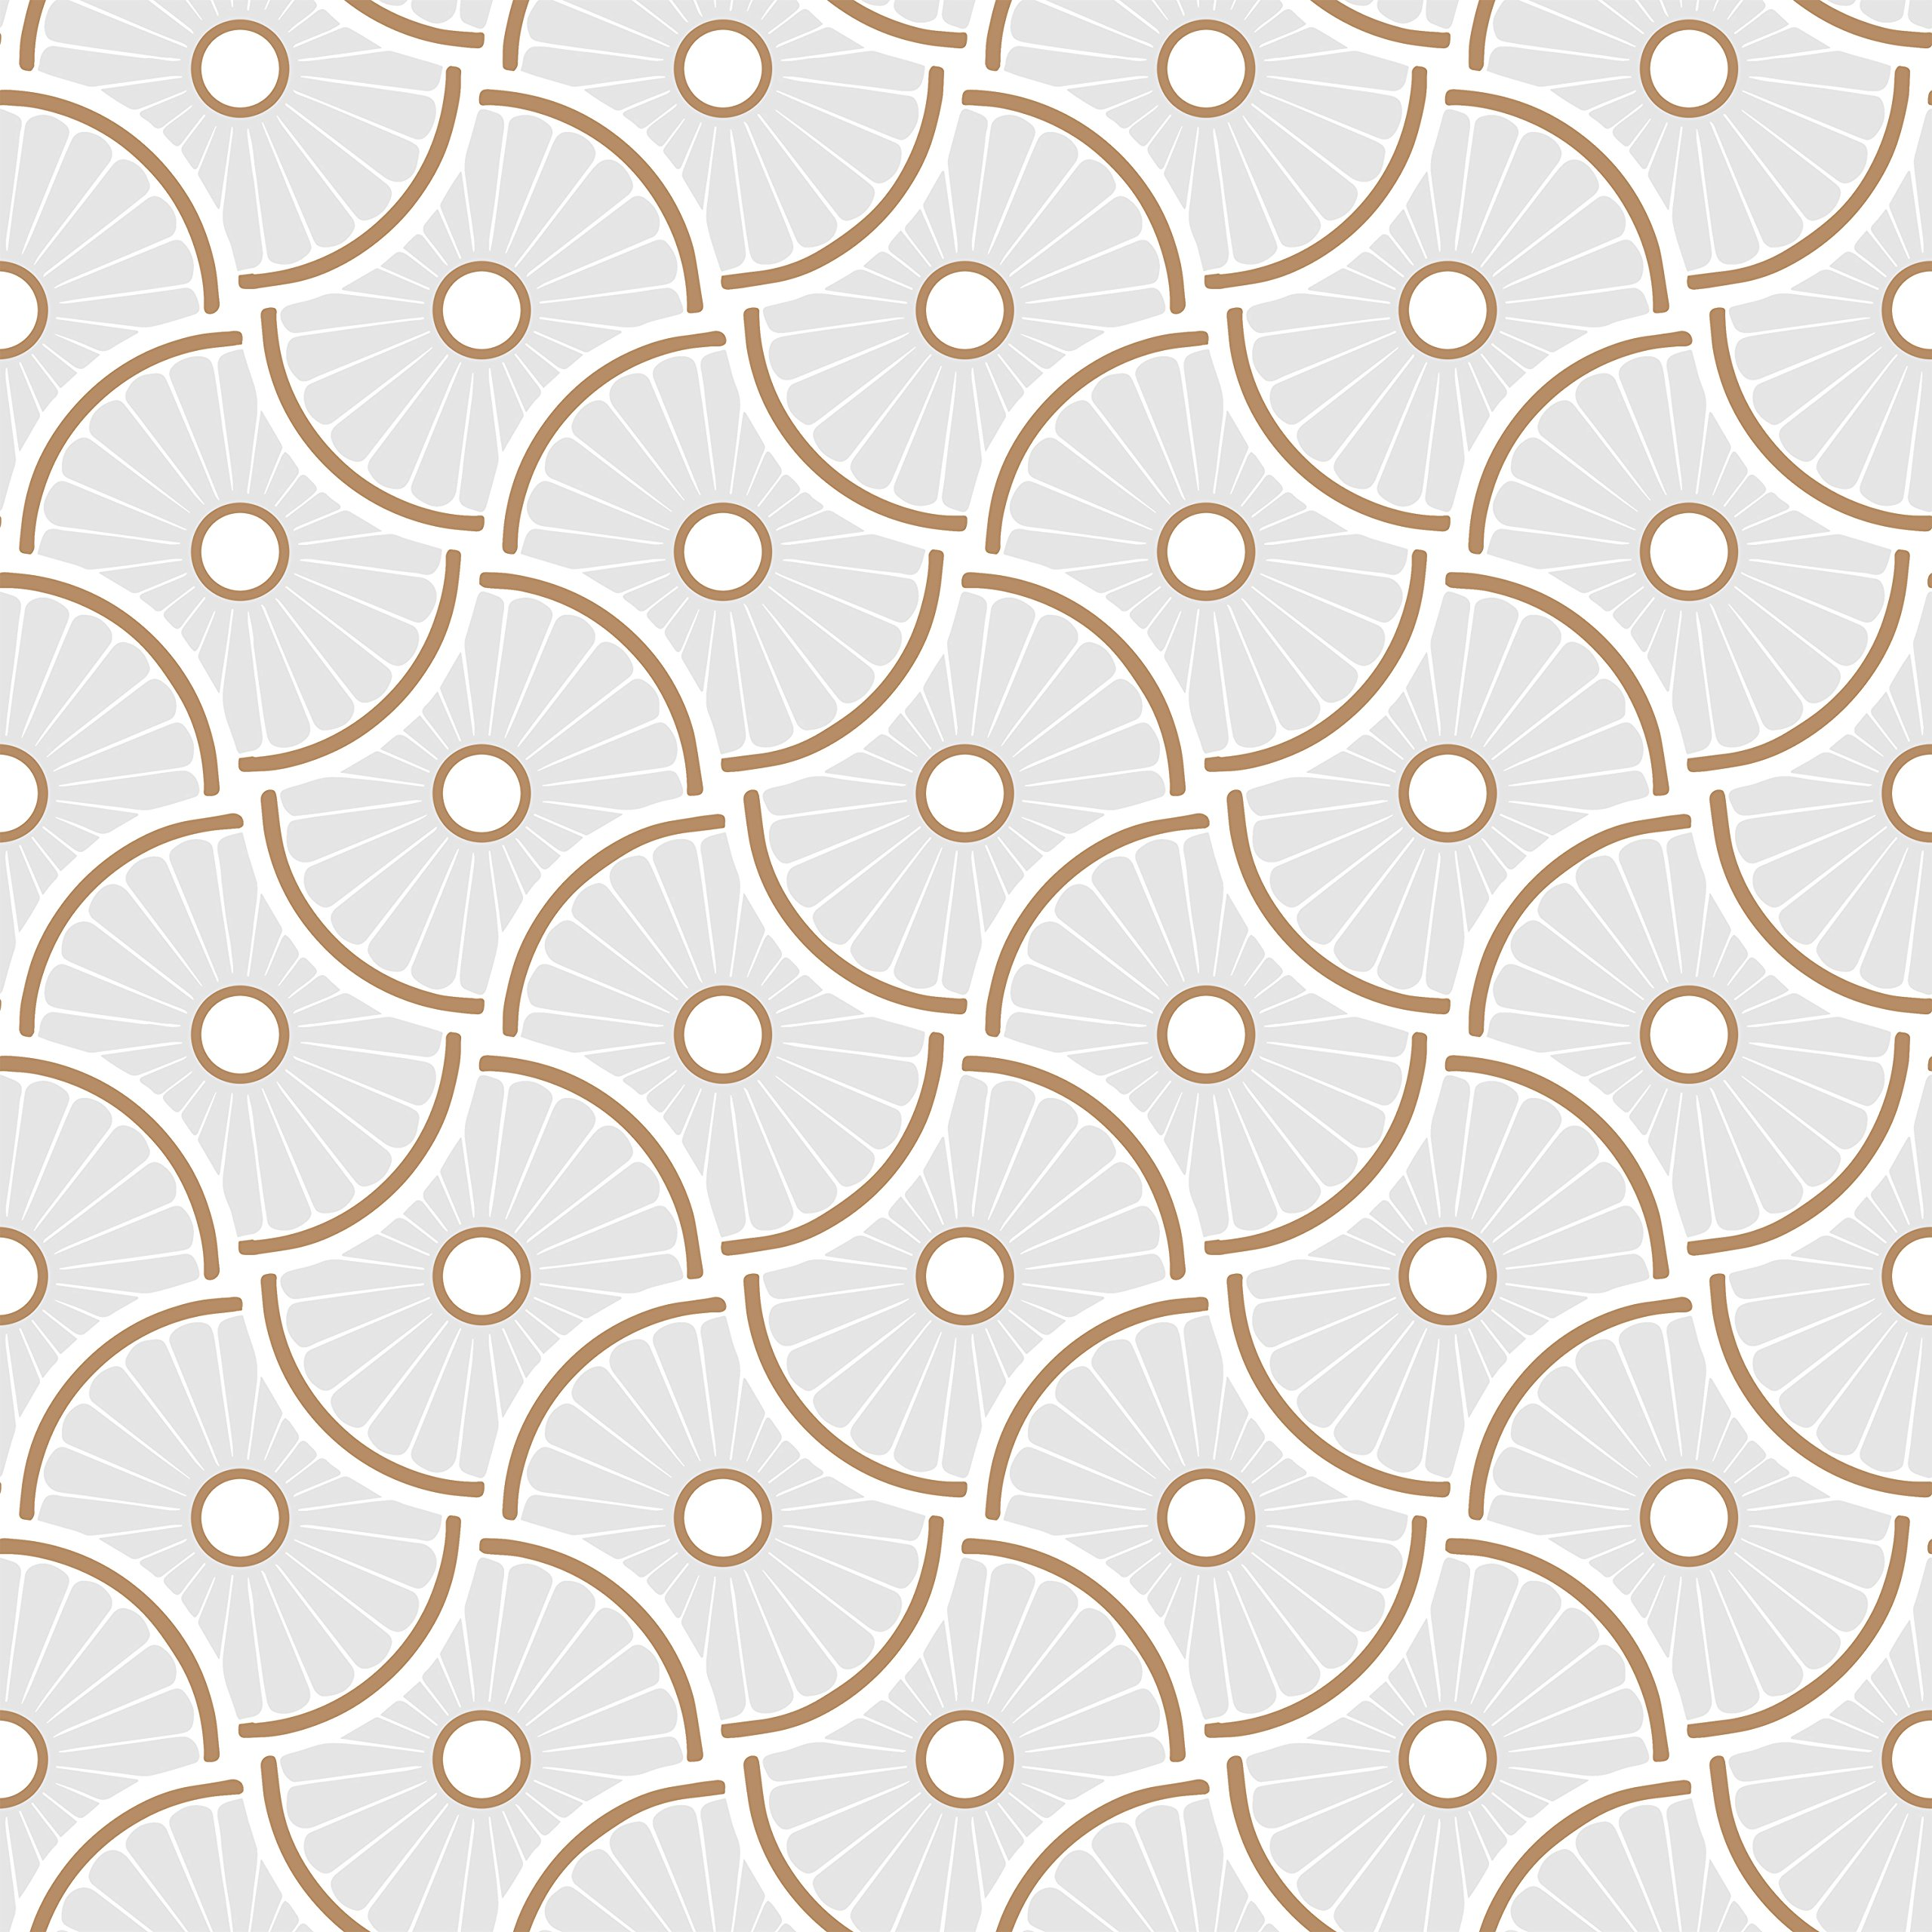 Novogratz WH471 Wheels Removable Wallpaper, 20.5'' W x 16.5' Long = 28 sq.ft, Mist by Novogratz